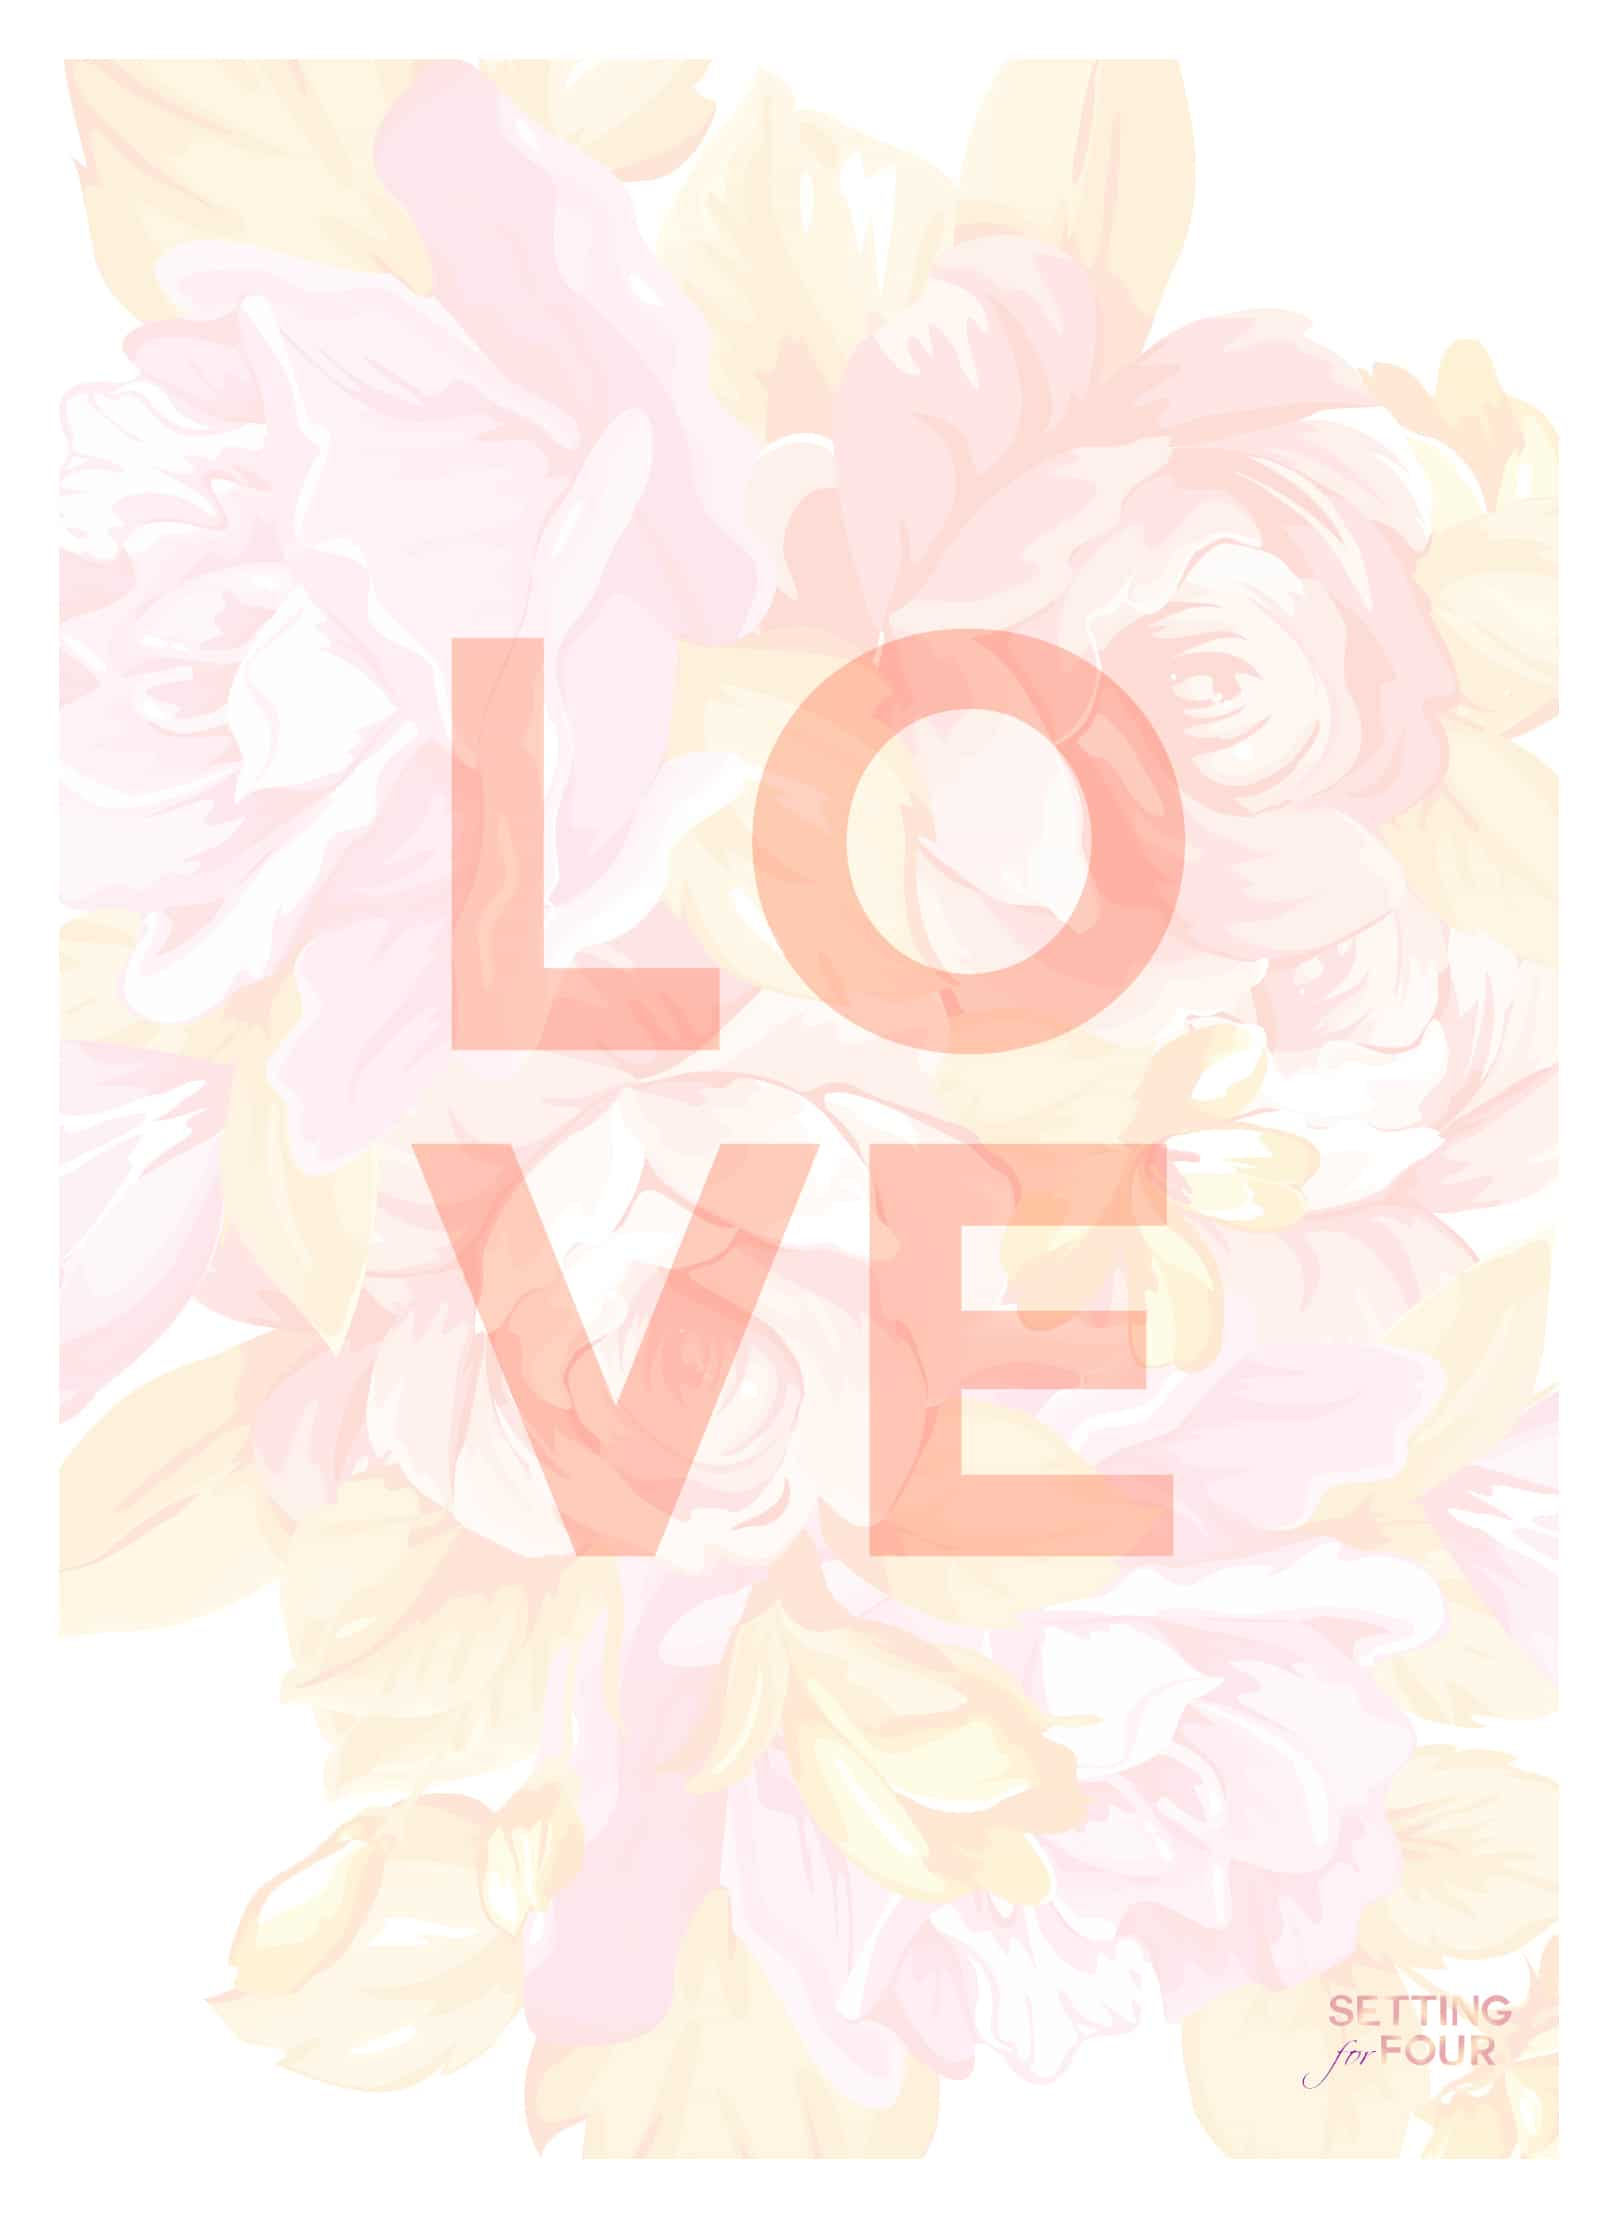 Free Floral Iphone Ipad Wallpaper And Printable Art